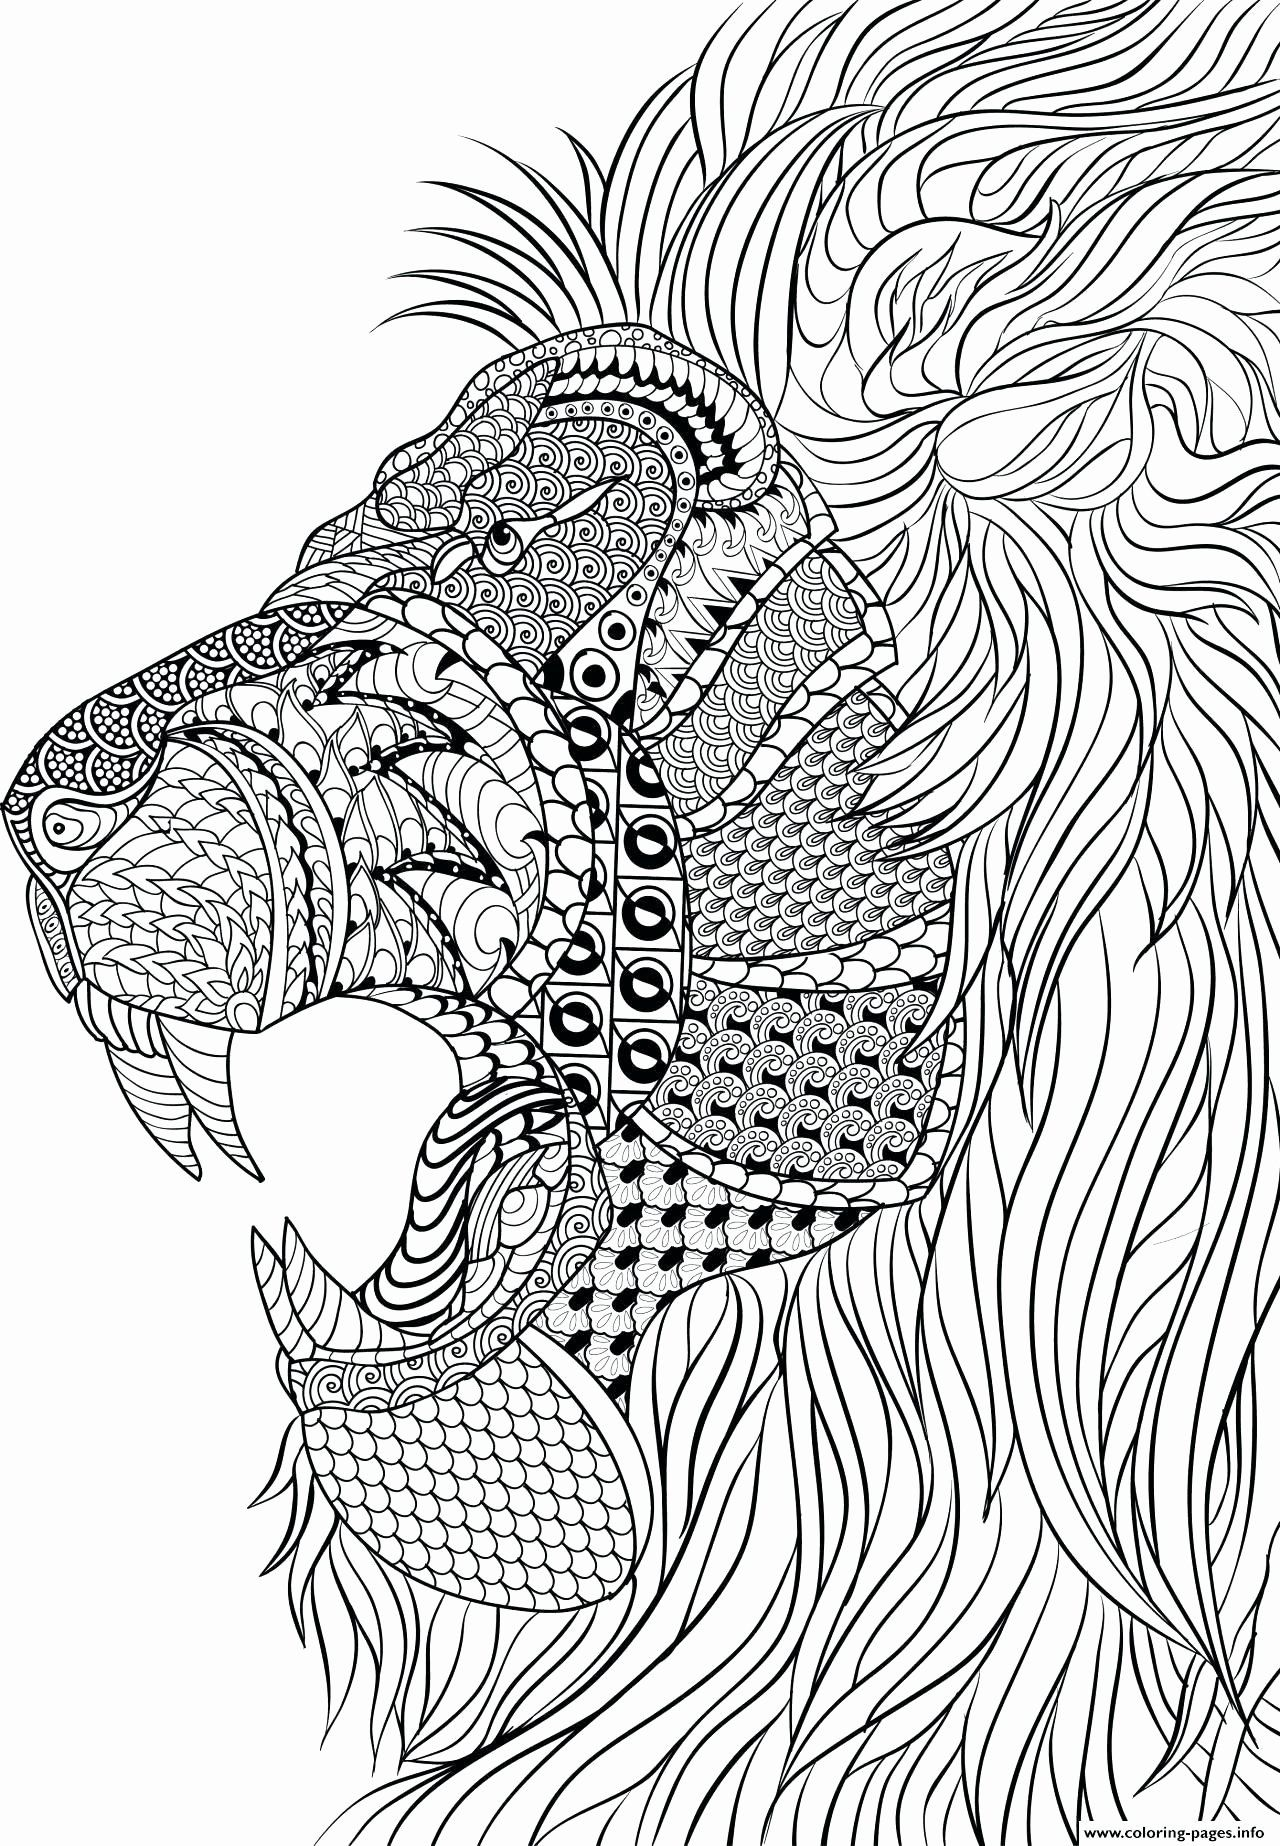 Lion Family Coloring Pages Inspirational Realistic Lion Coloring Pages Cellarpaper In 2020 Lion Coloring Pages Animal Coloring Pages Animal Coloring Books